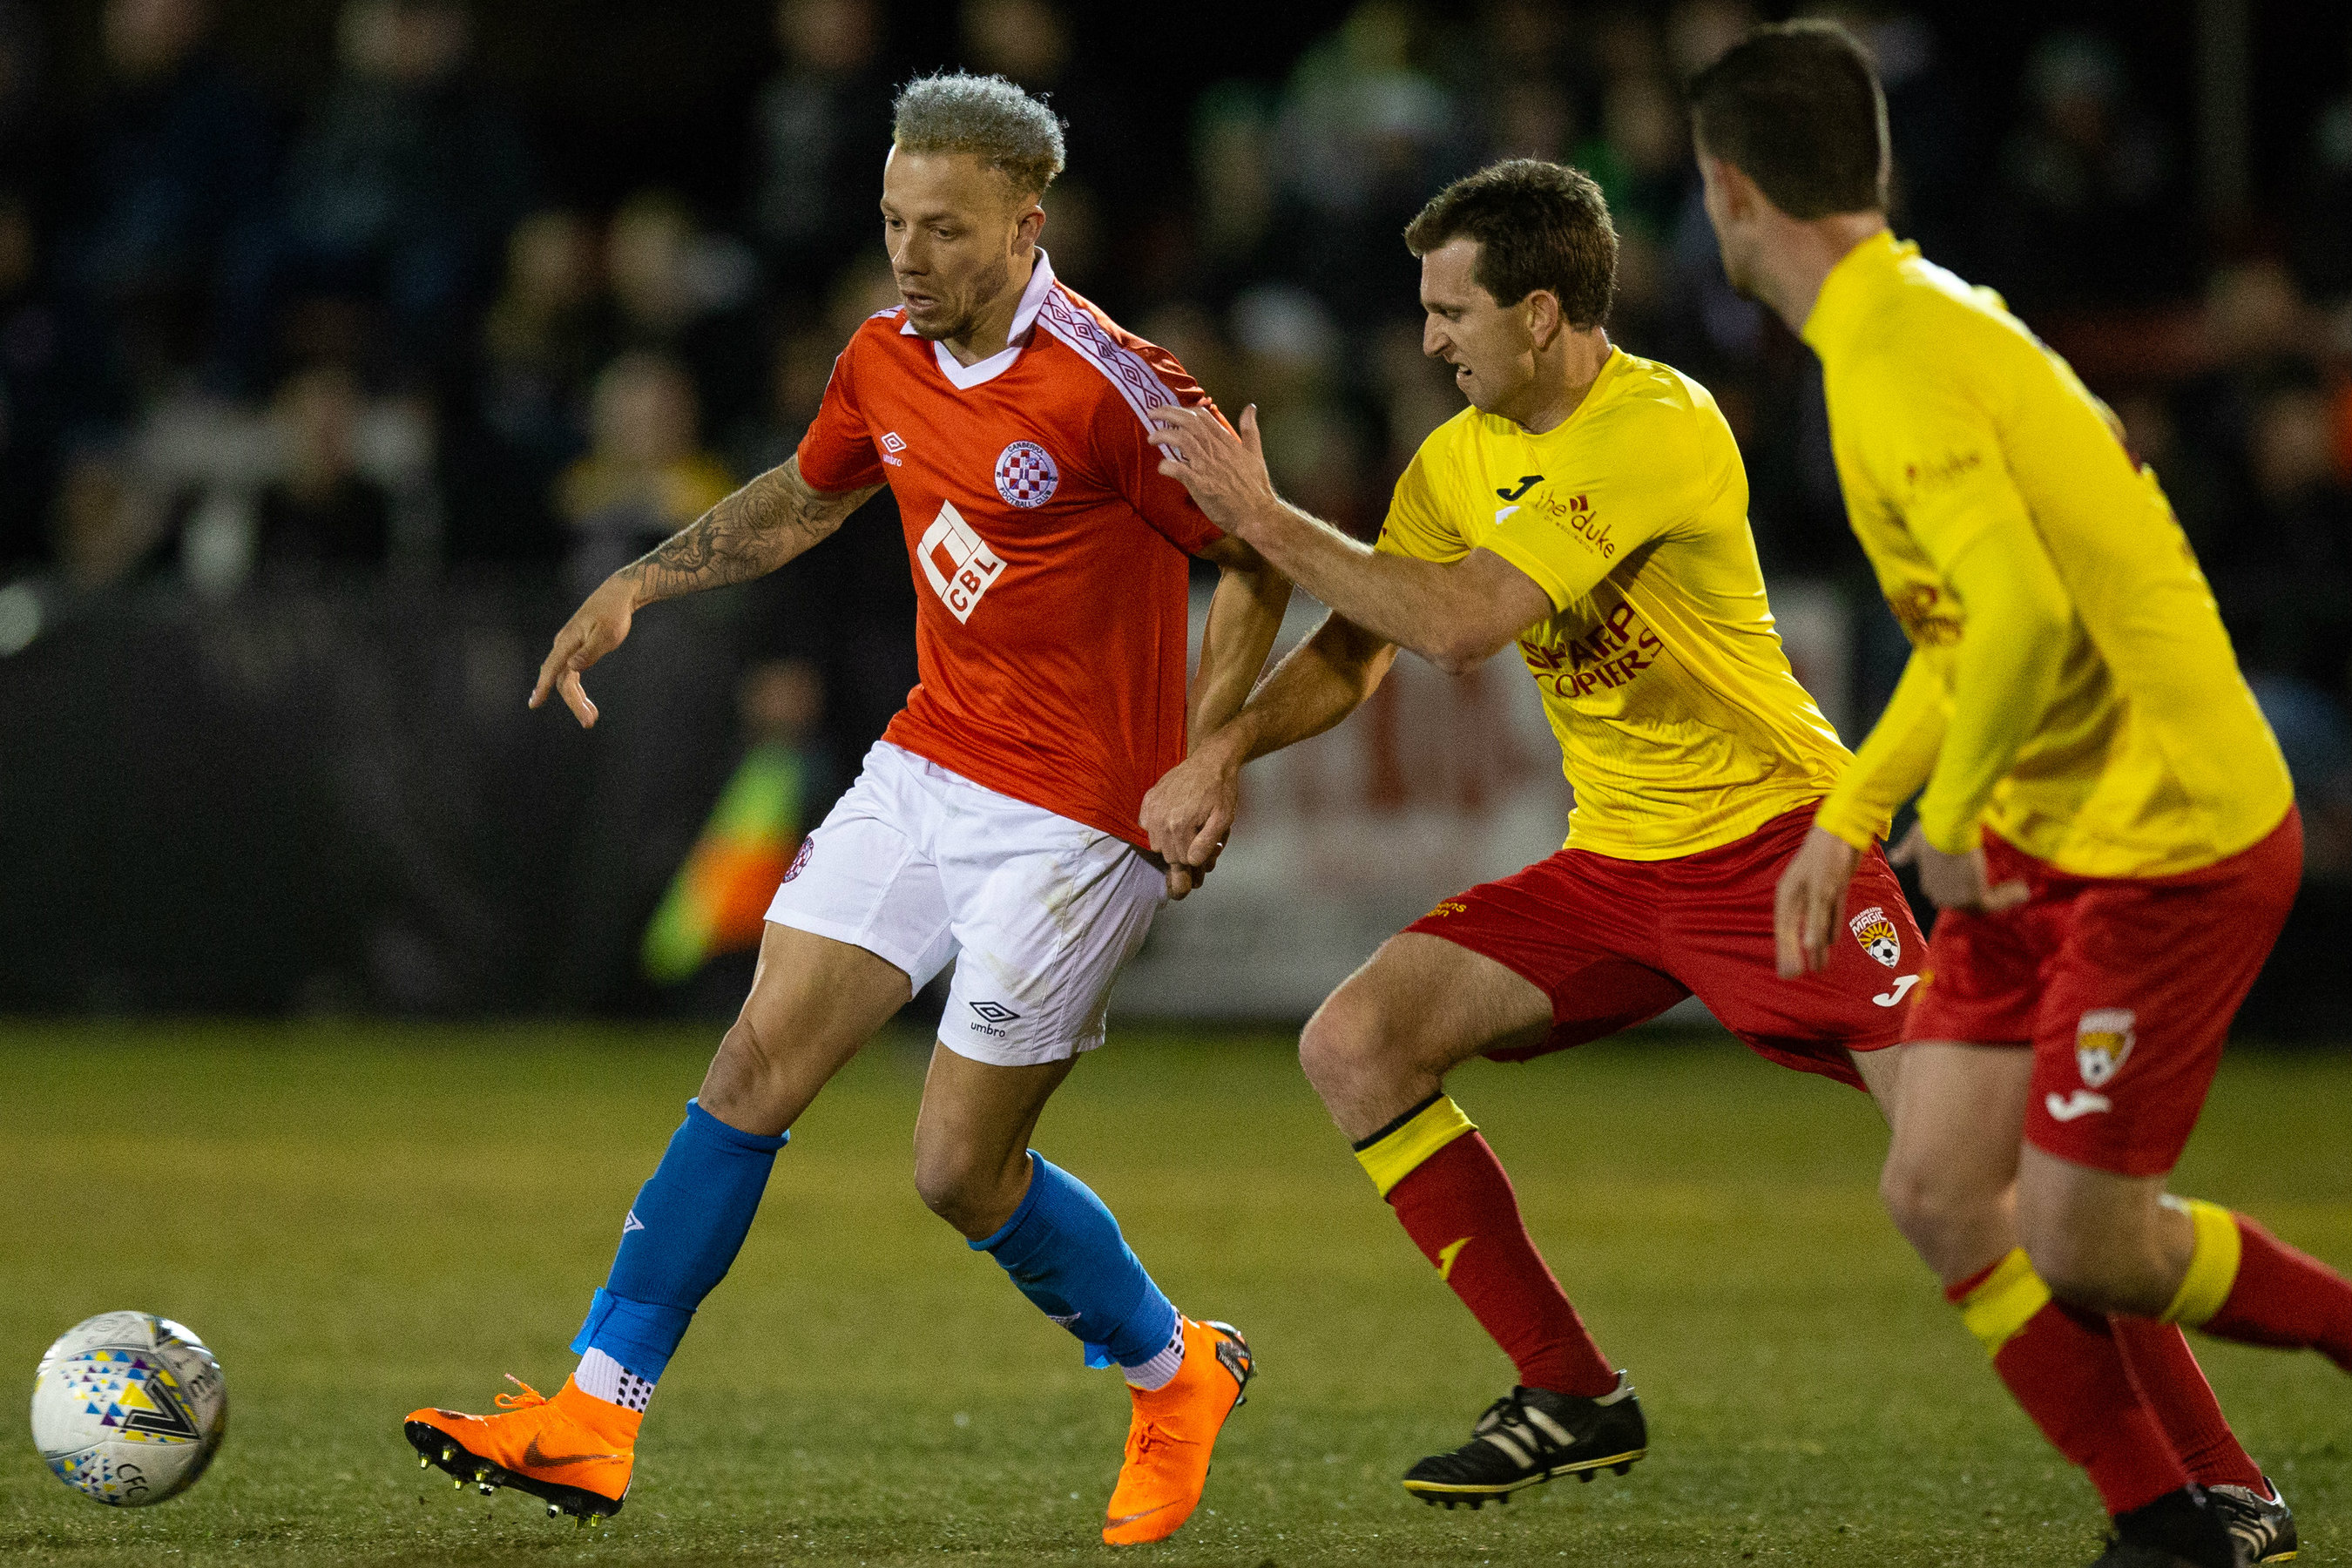 Thomas James in action in this year's FFA Cup